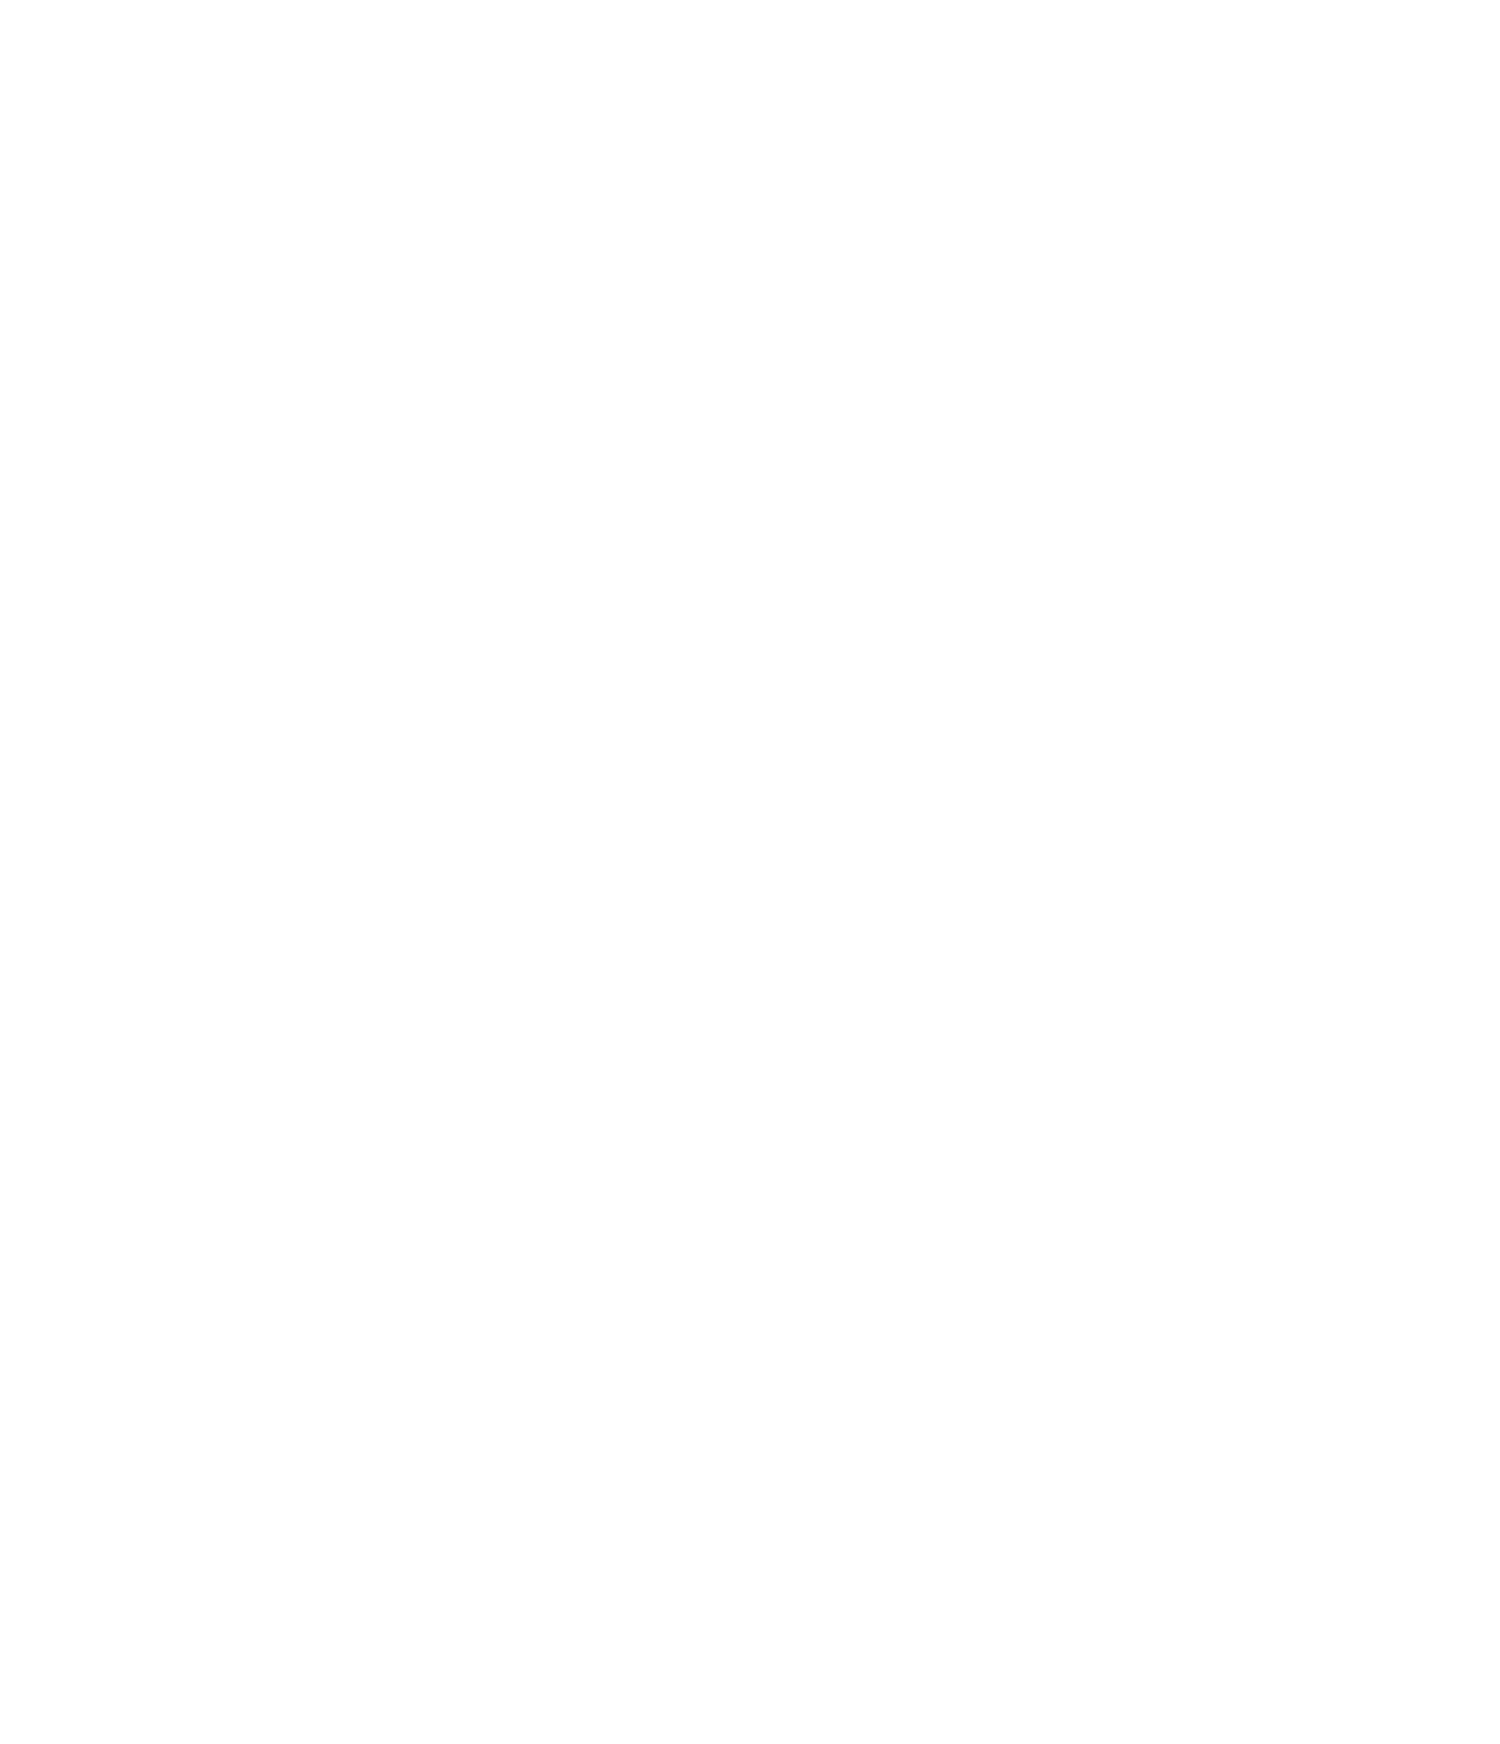 1 WORLD FEST GLOBAL